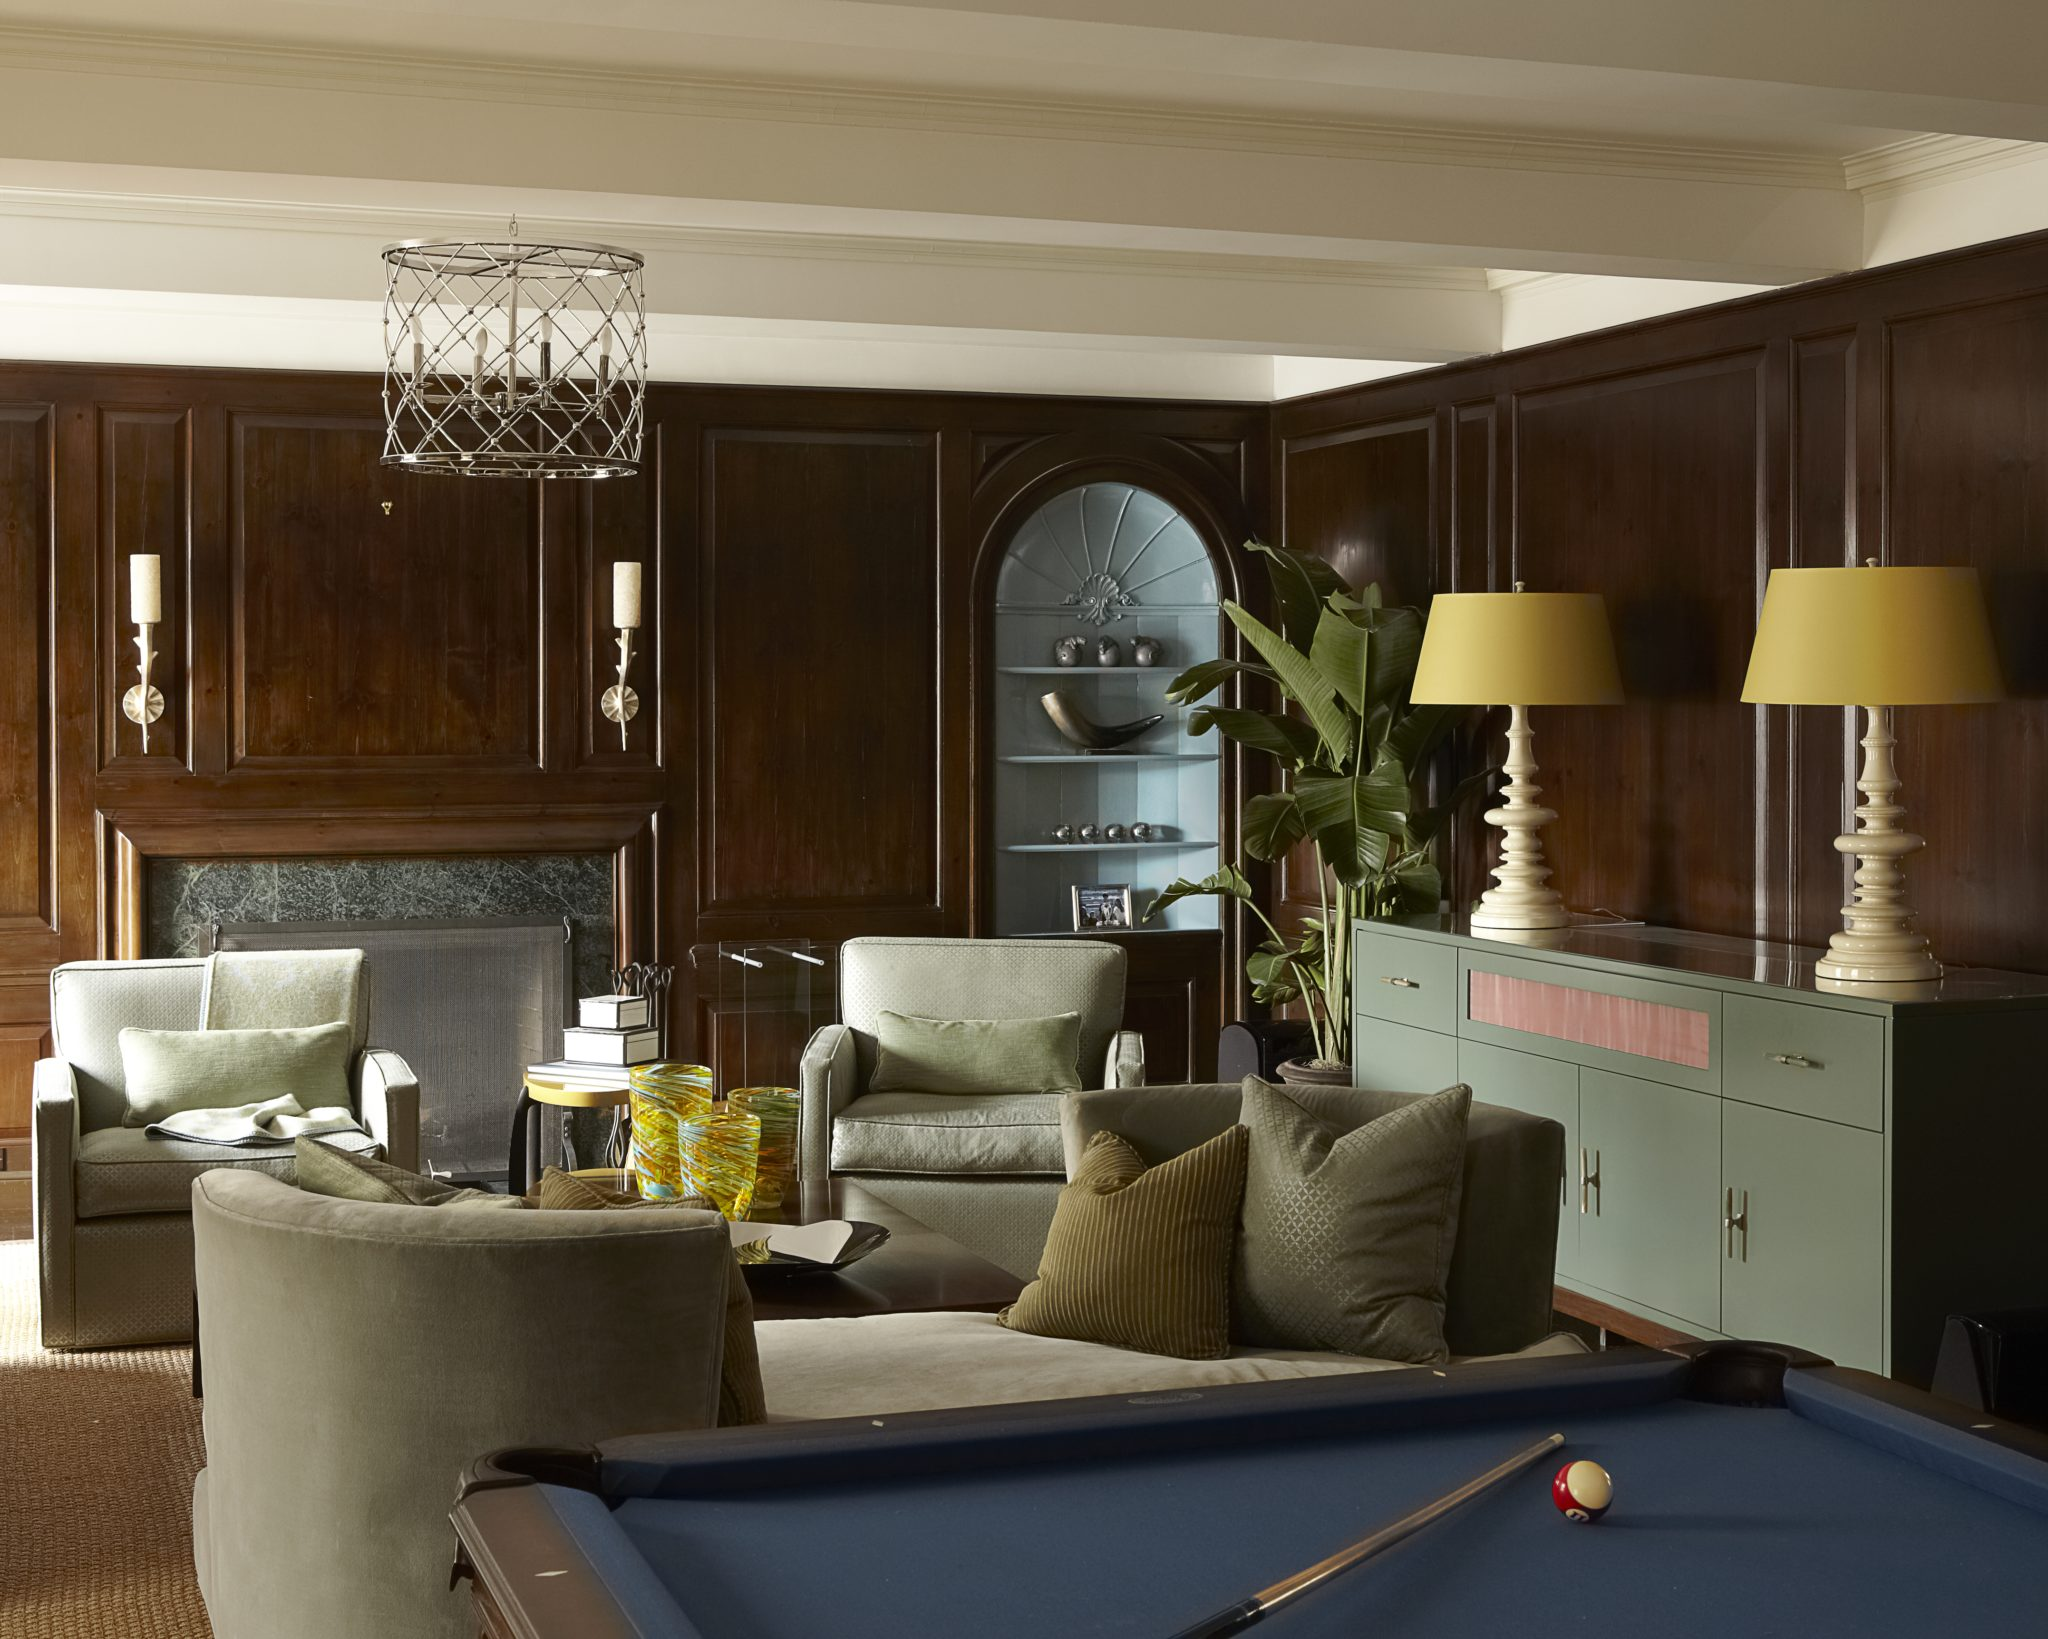 Sitting room in New York City with a billiards table by Carolyn Rebuffel Designs